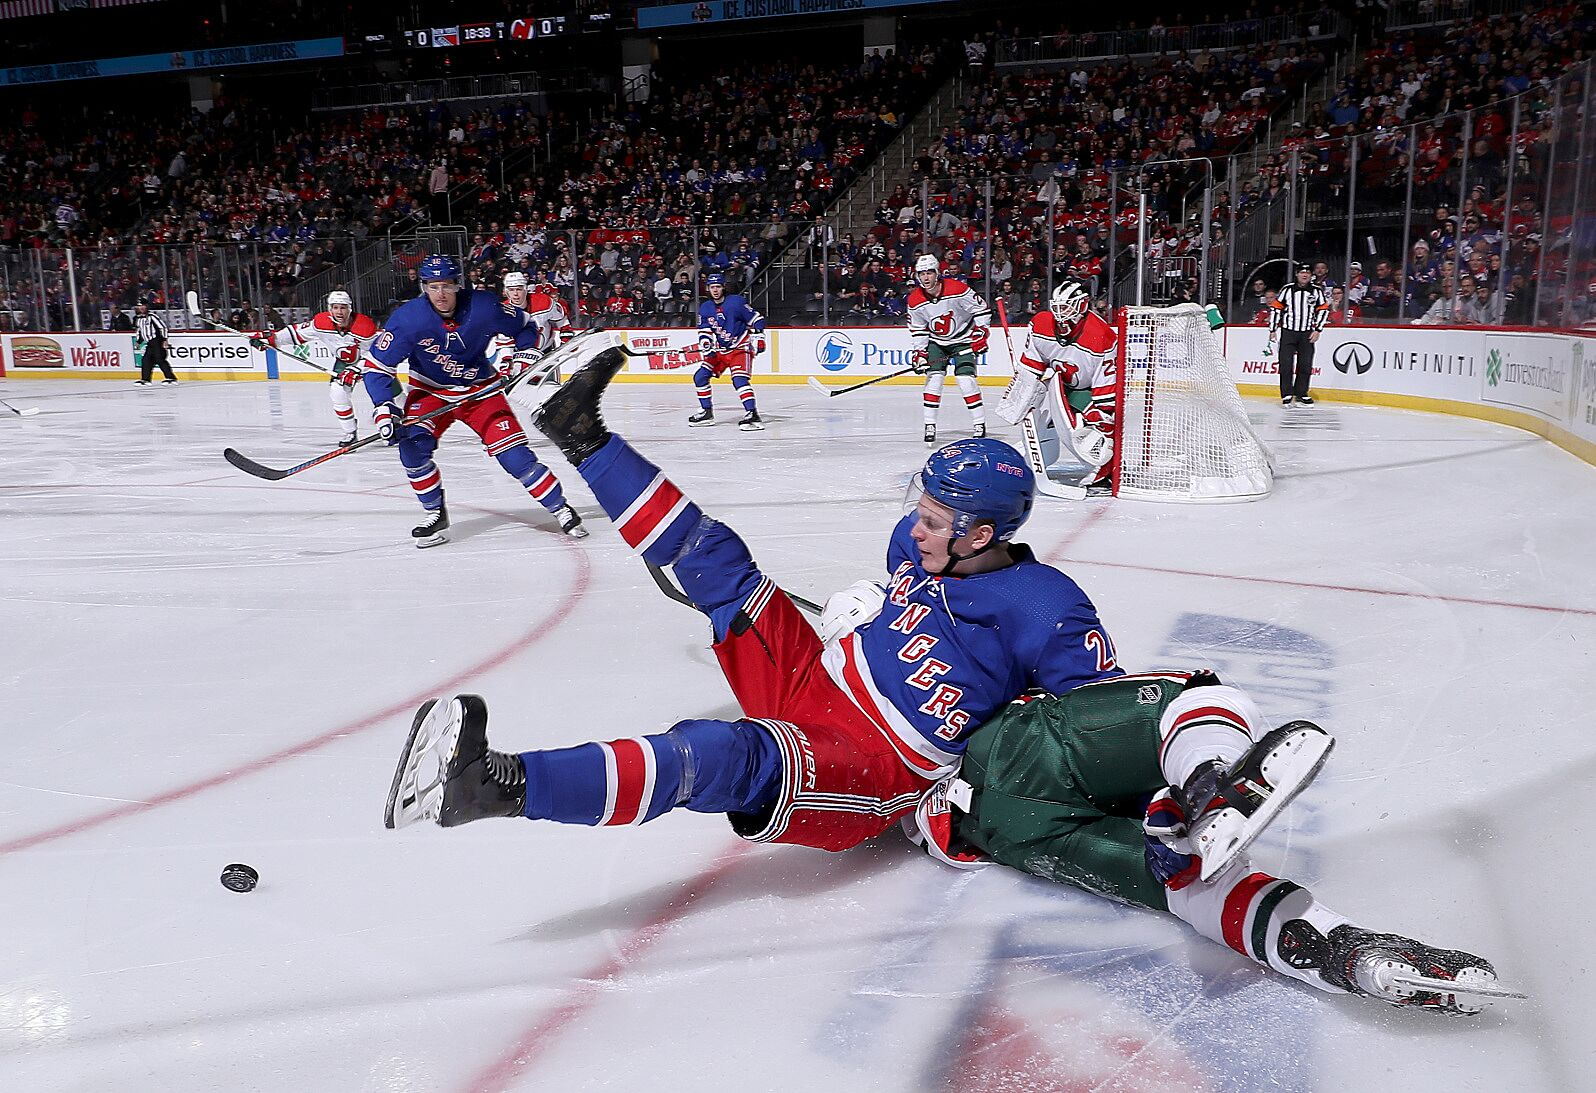 New York Rangers: PK comes up huge in Devils win, other takeaways